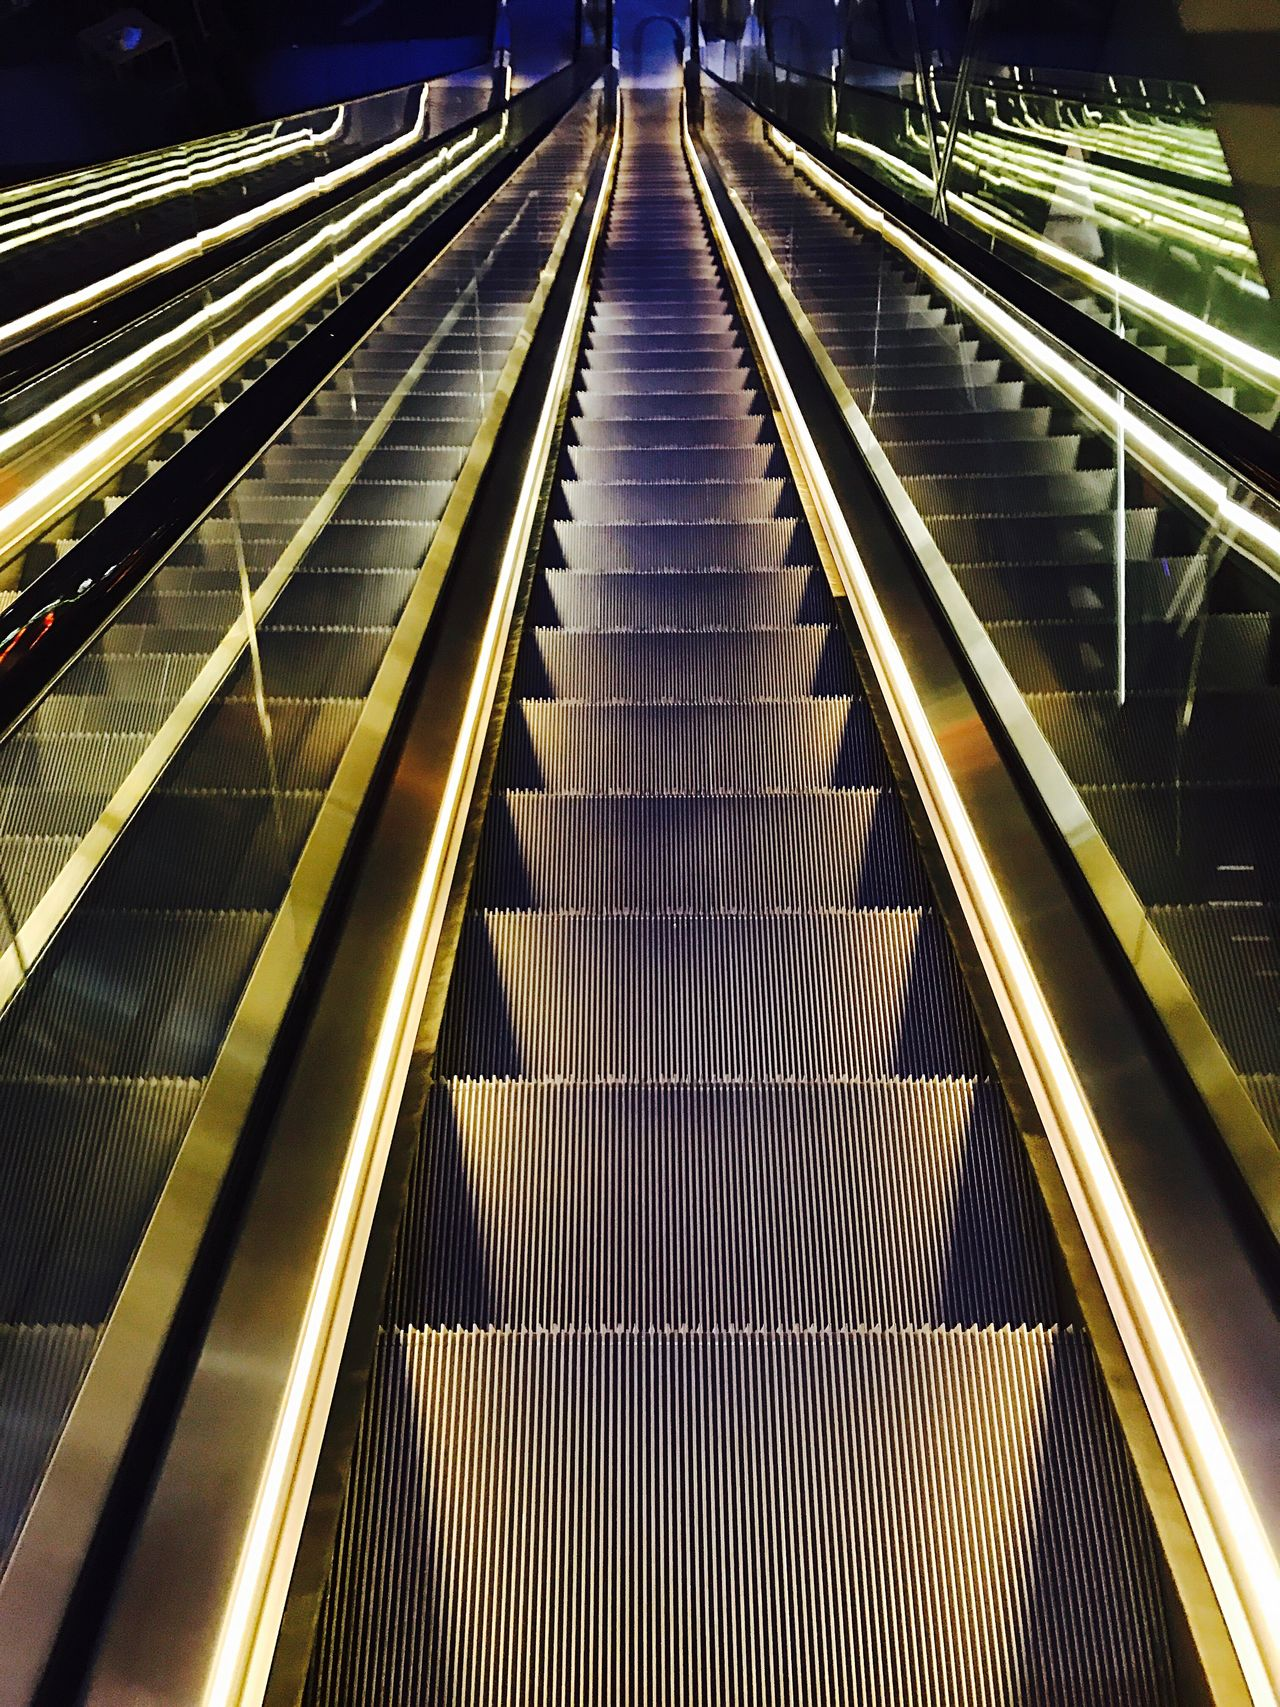 Night Staircase Steps And Staircases Steps Railing Convenience Futuristic Indoors  Architecture Technology Modern Built Structure The Way Forward Illuminated No People Berlin Hand Rail